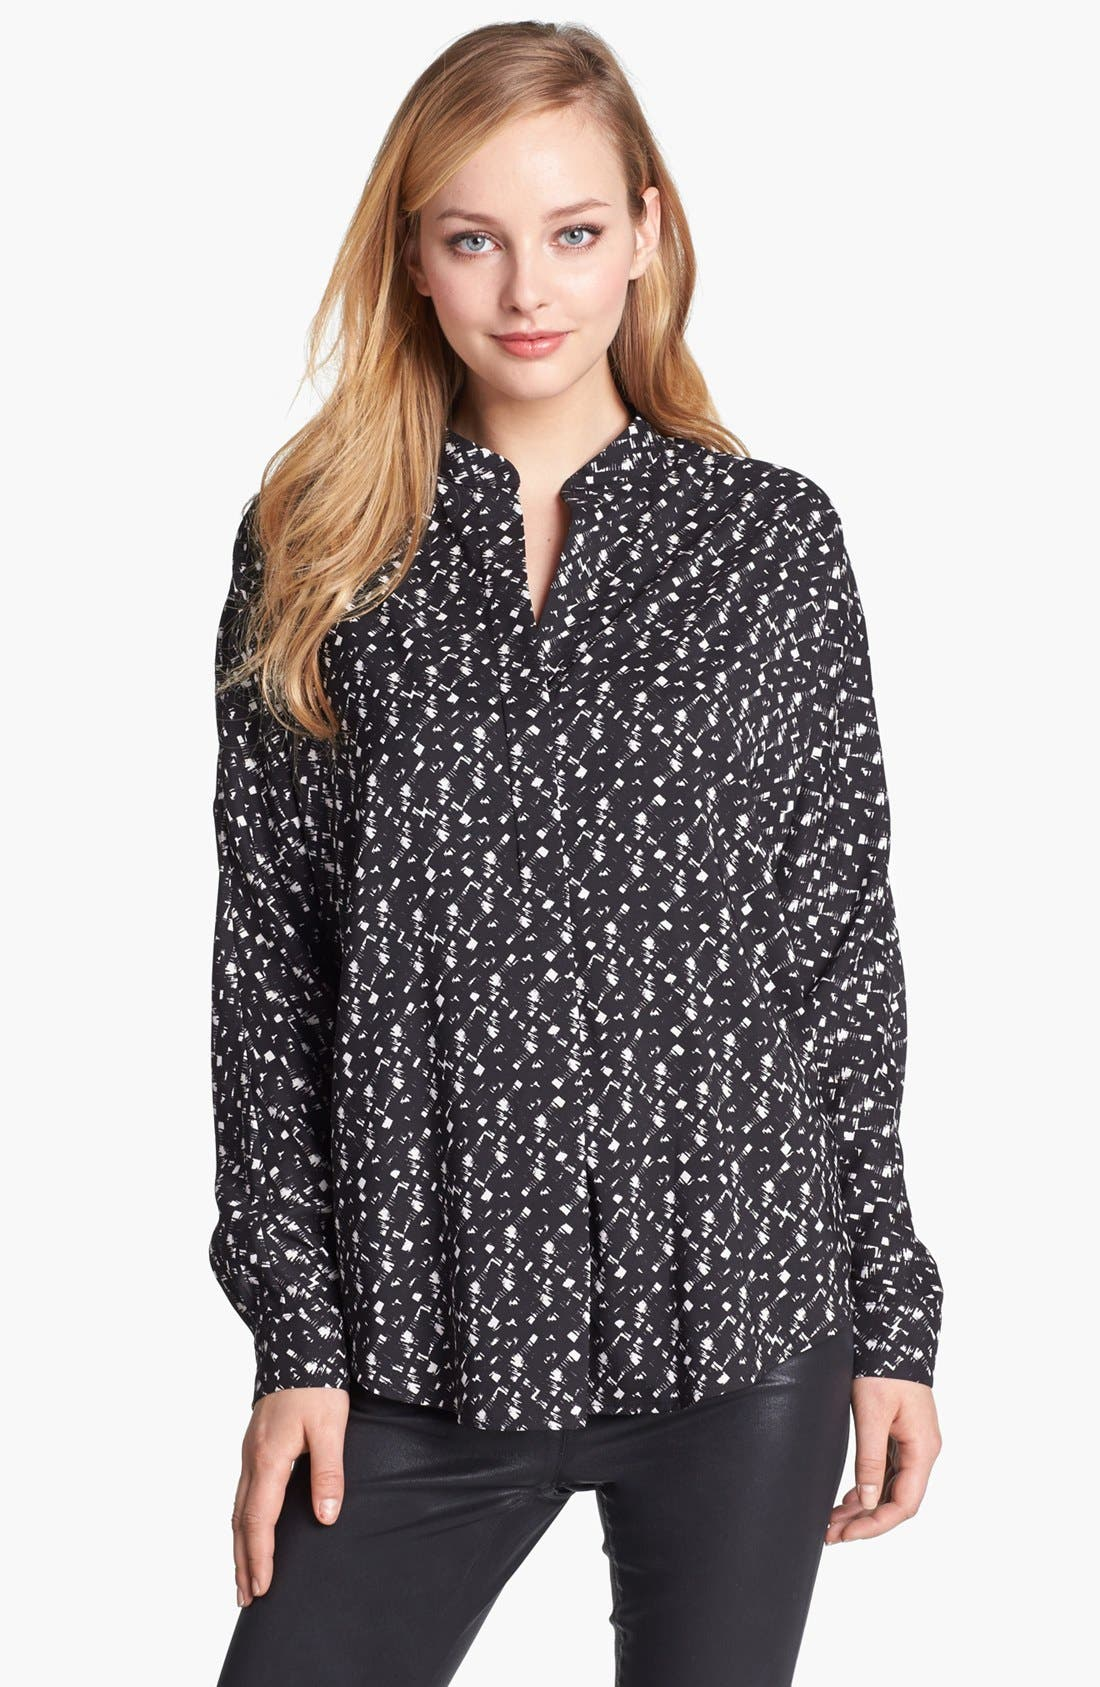 Alternate Image 1 Selected - Vince Camuto Print Split Neck Top